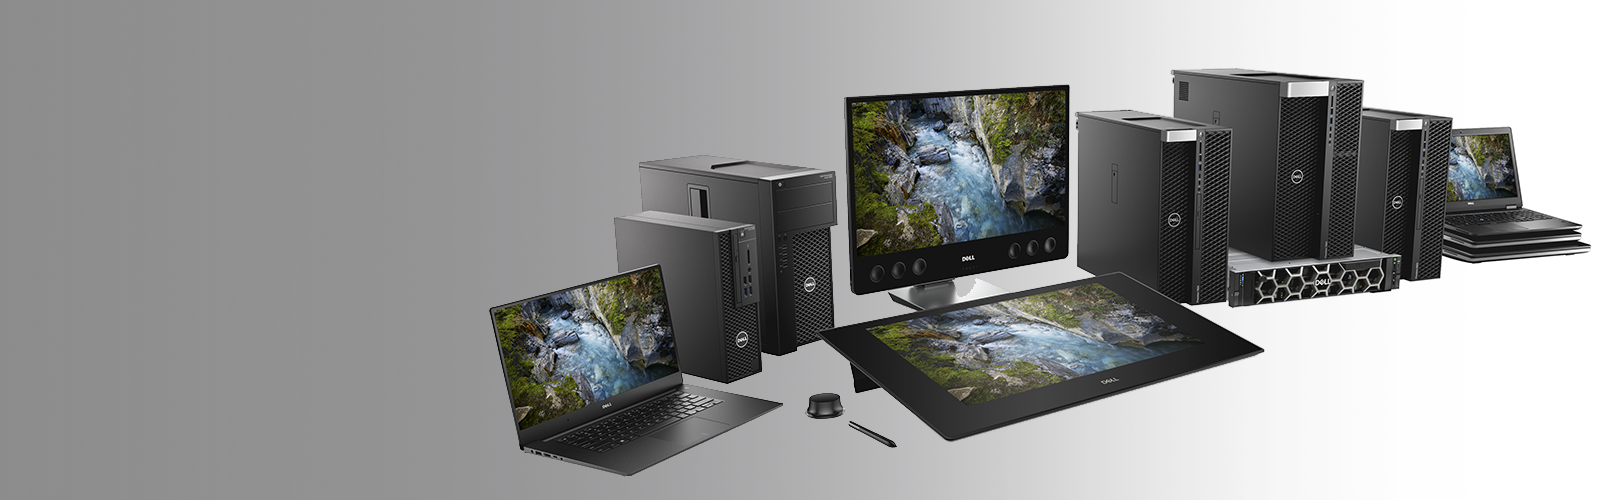 Dell Precision Workstations mit NVIDIA Quadro RTX 4000